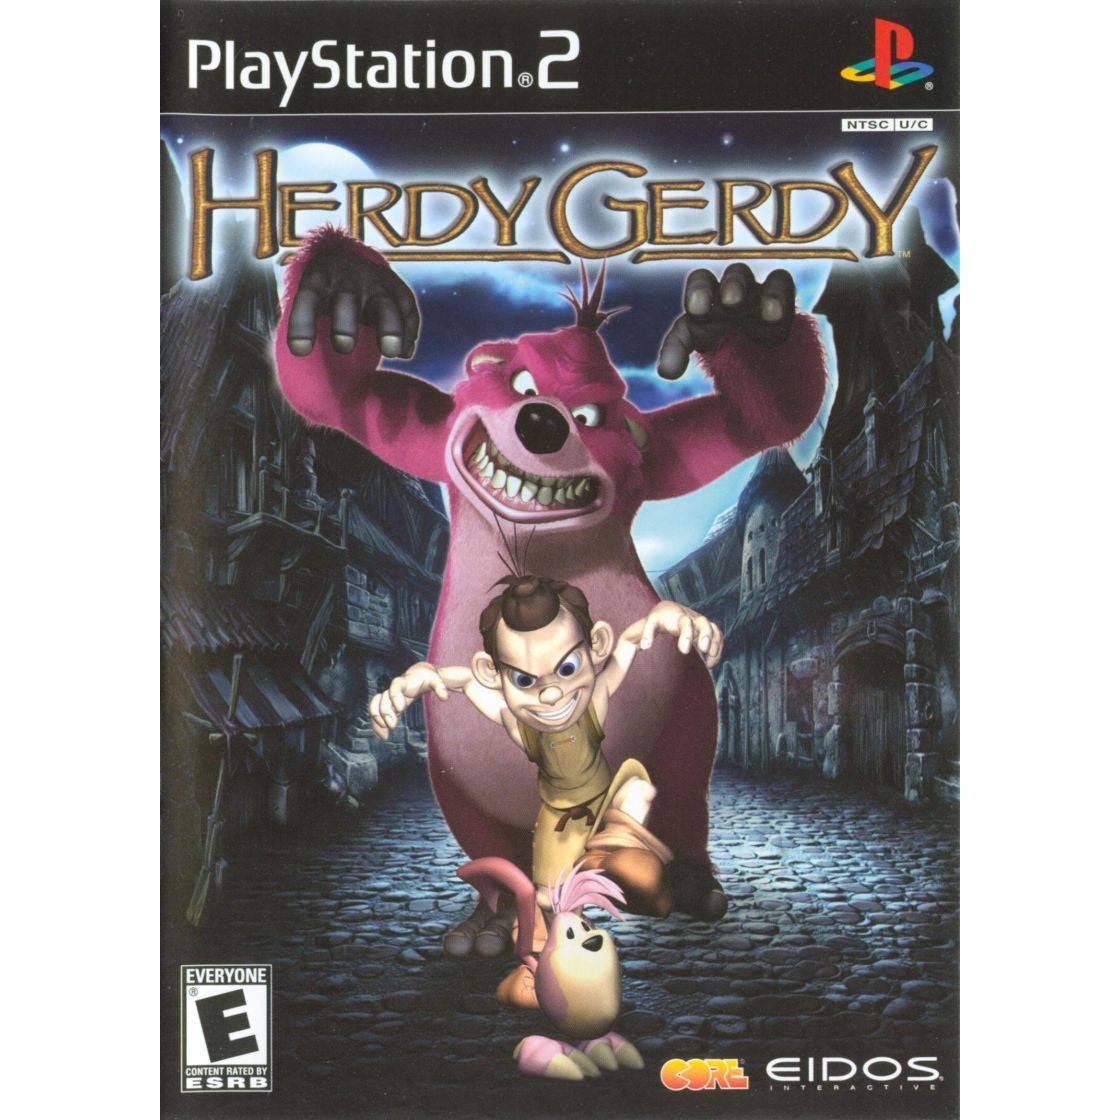 Herdy Gerdy - PlayStation 2 (PS2) Game Complete - YourGamingShop.com - Buy, Sell, Trade Video Games Online. 120 Day Warranty. Satisfaction Guaranteed.